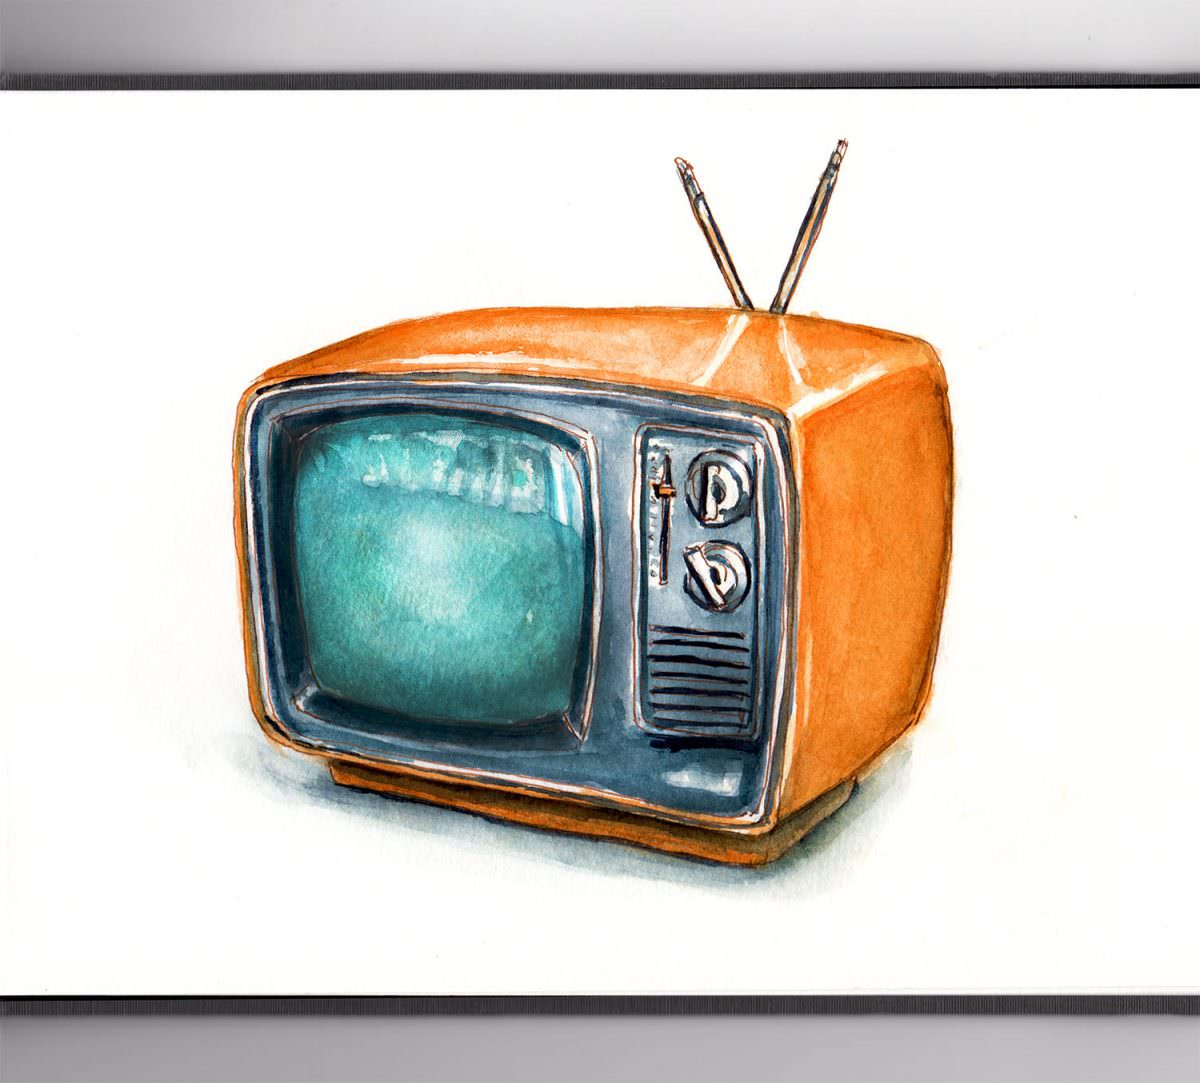 #WorldWatercolorGroup - Day 20 - Watching A Childhood Show - Orange Retro Television - Doodlewash